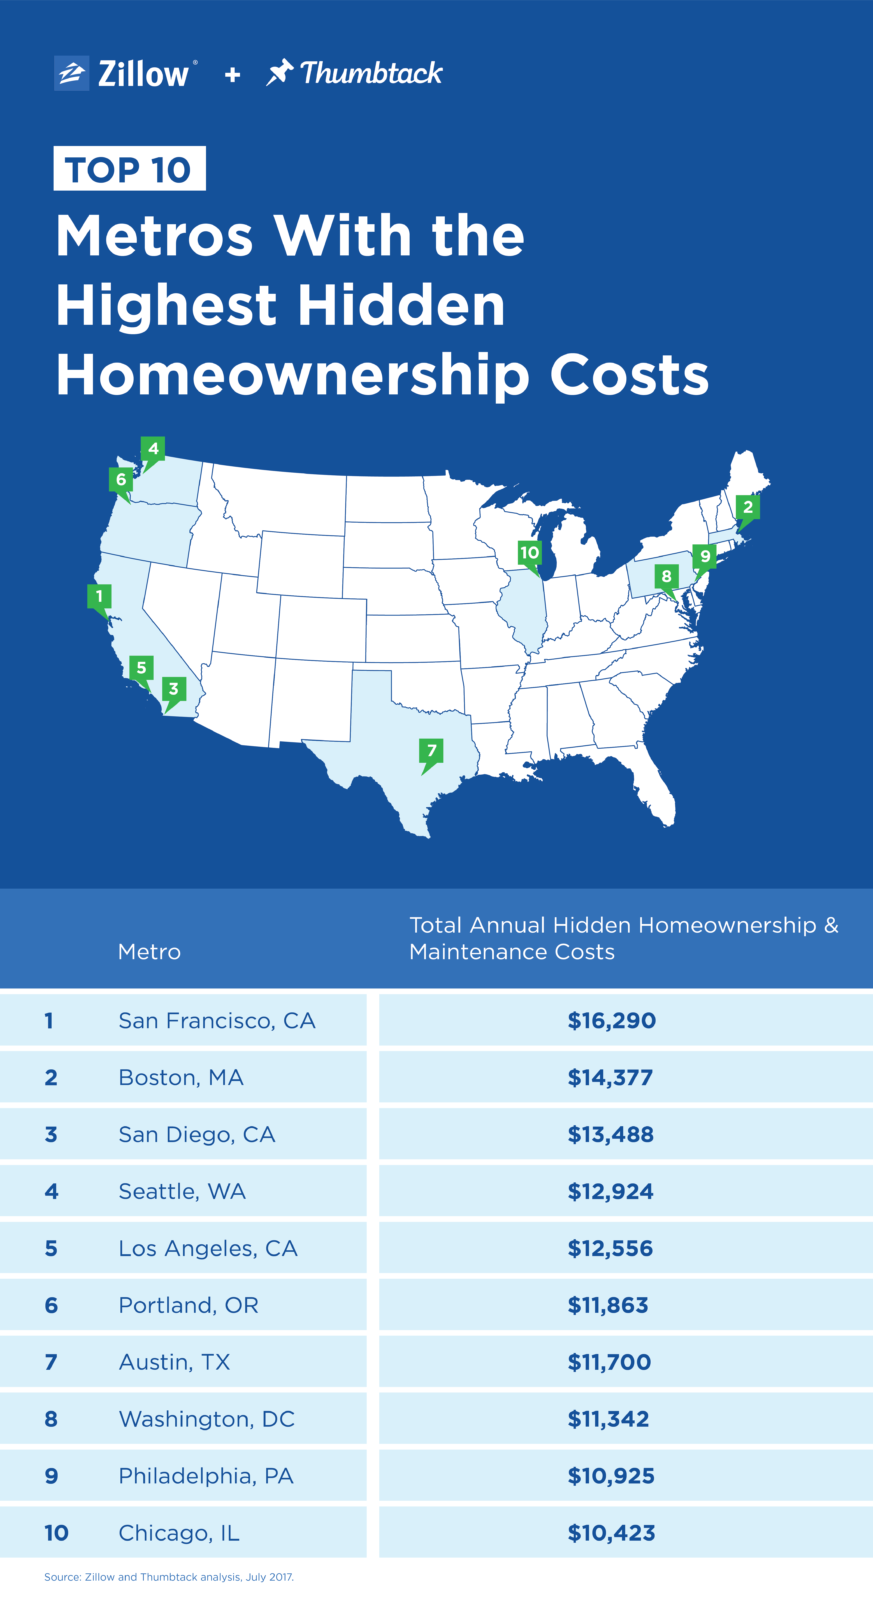 Hidden Costs of Homeownership Top $20,20 a Year   Zillow Research